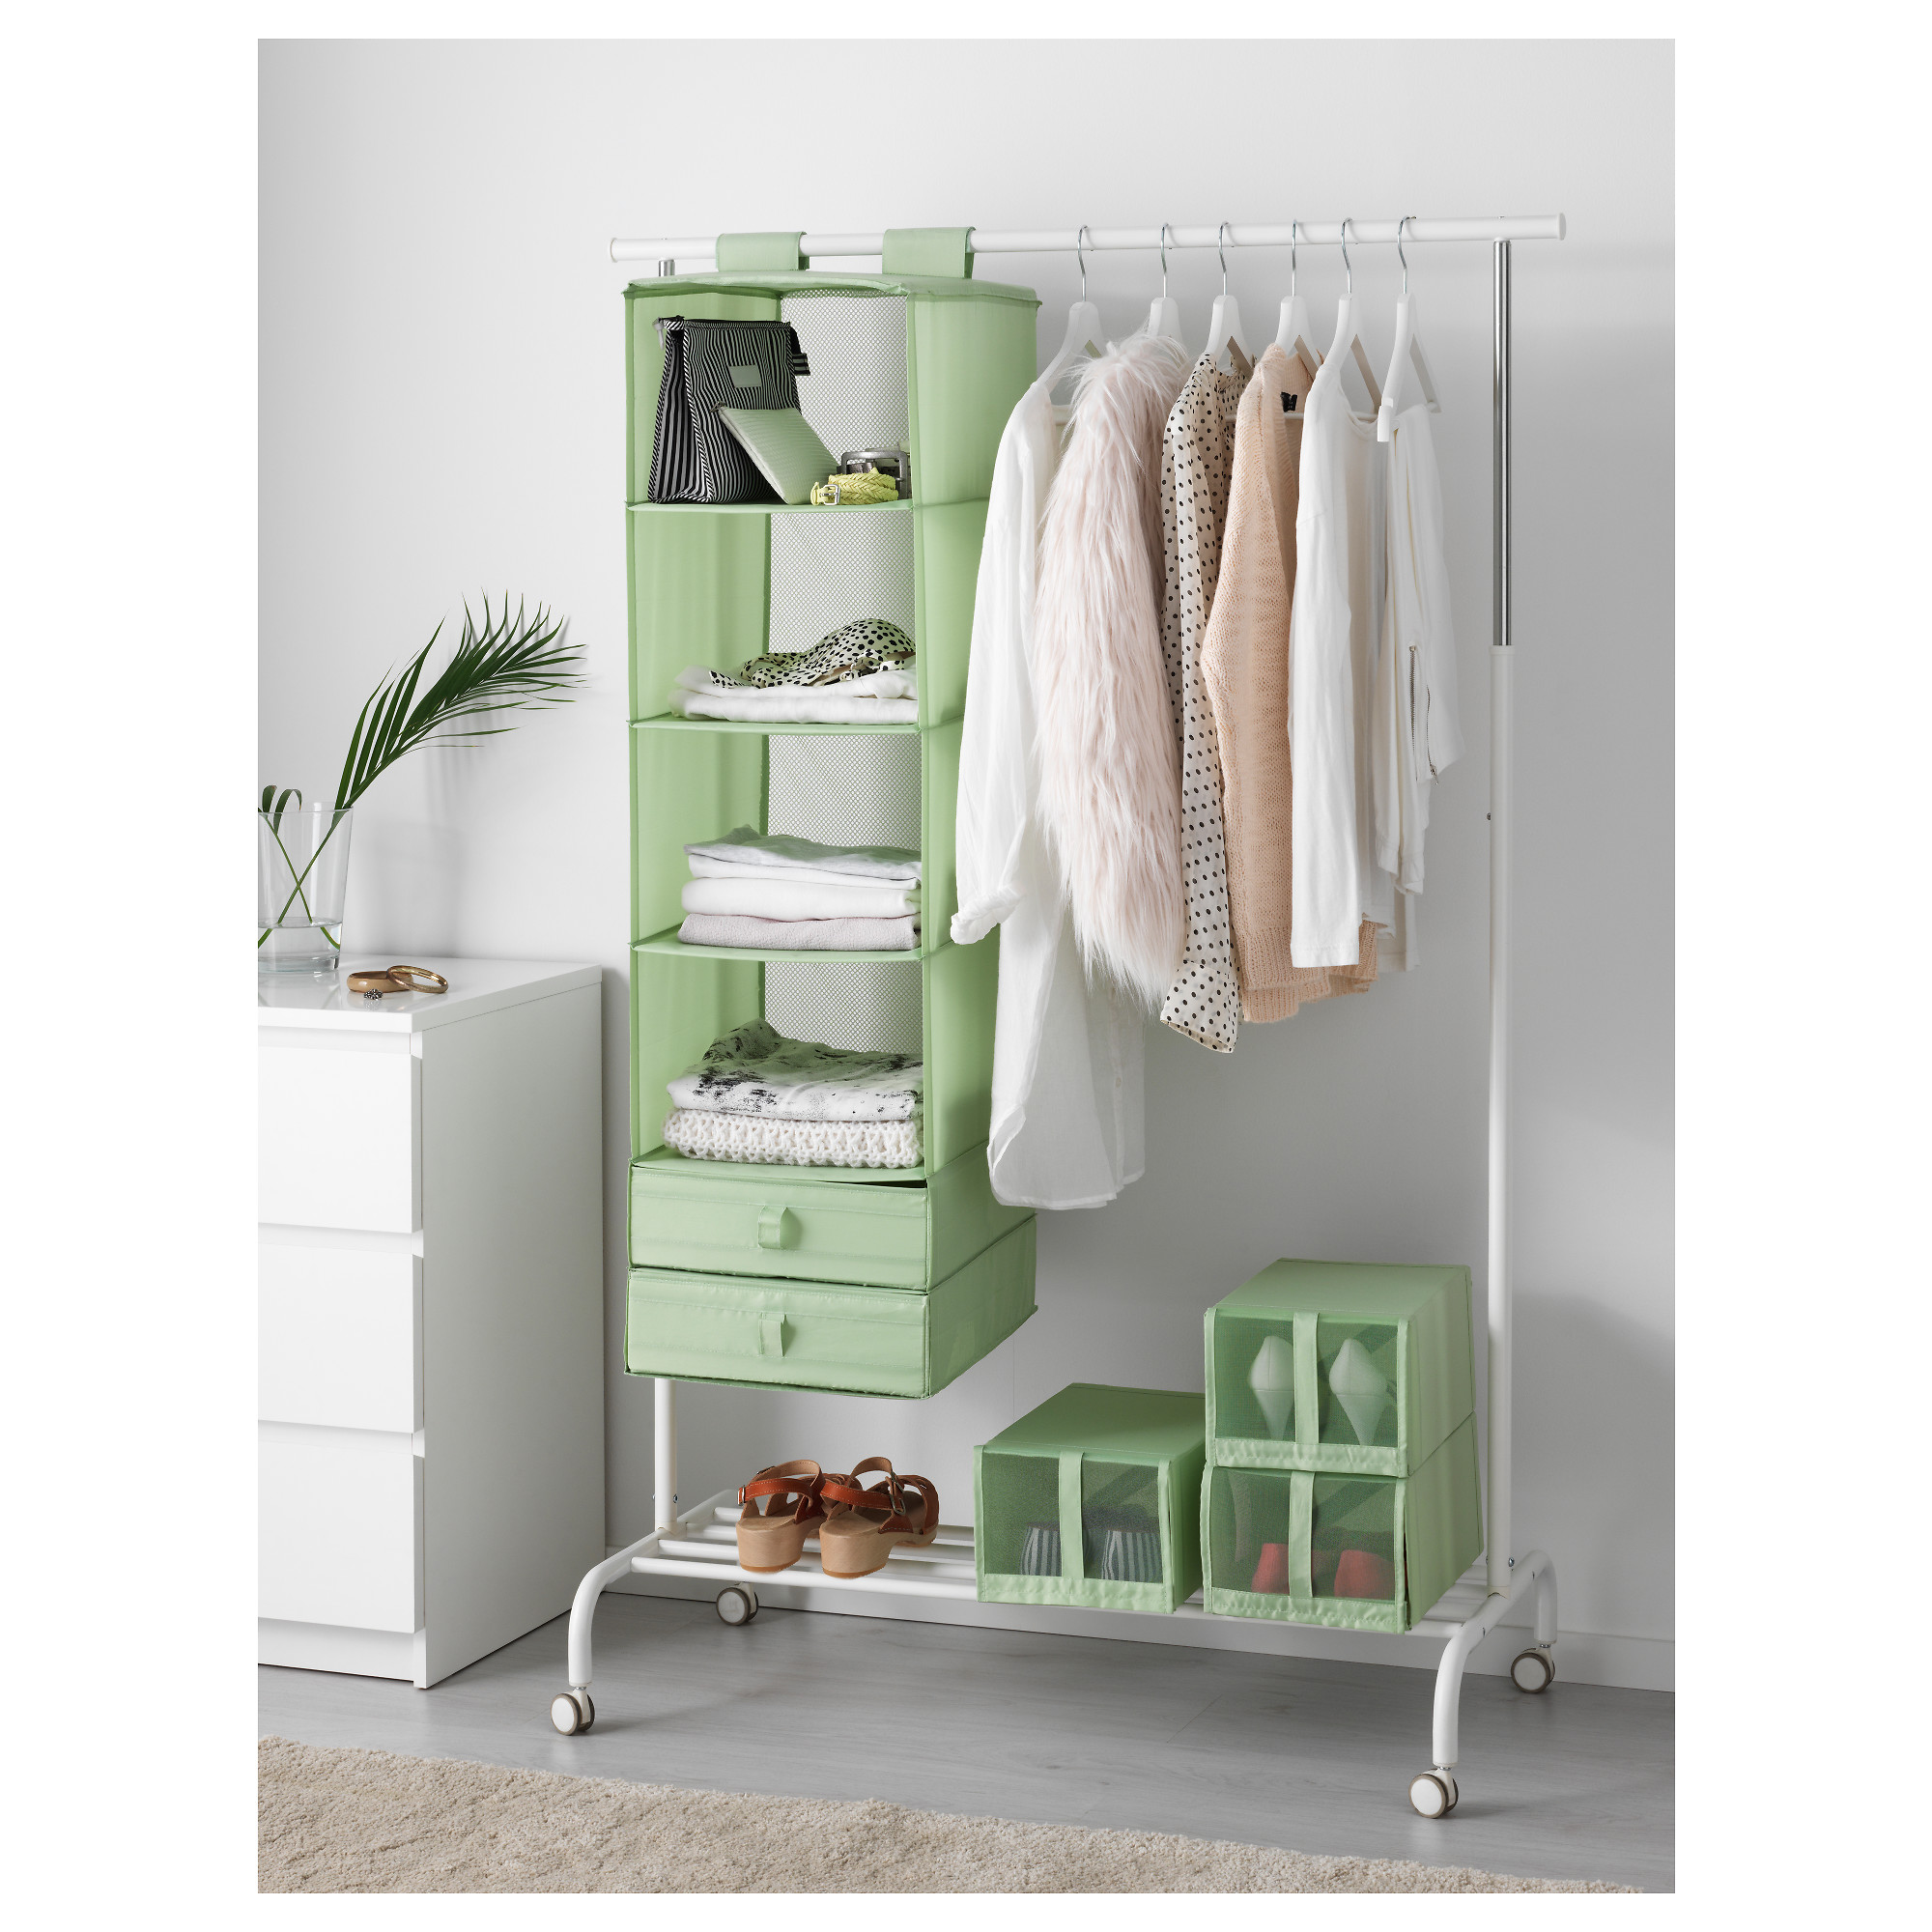 12 super creative storage ideas for small spaces - Clothes storage for small spaces model ...